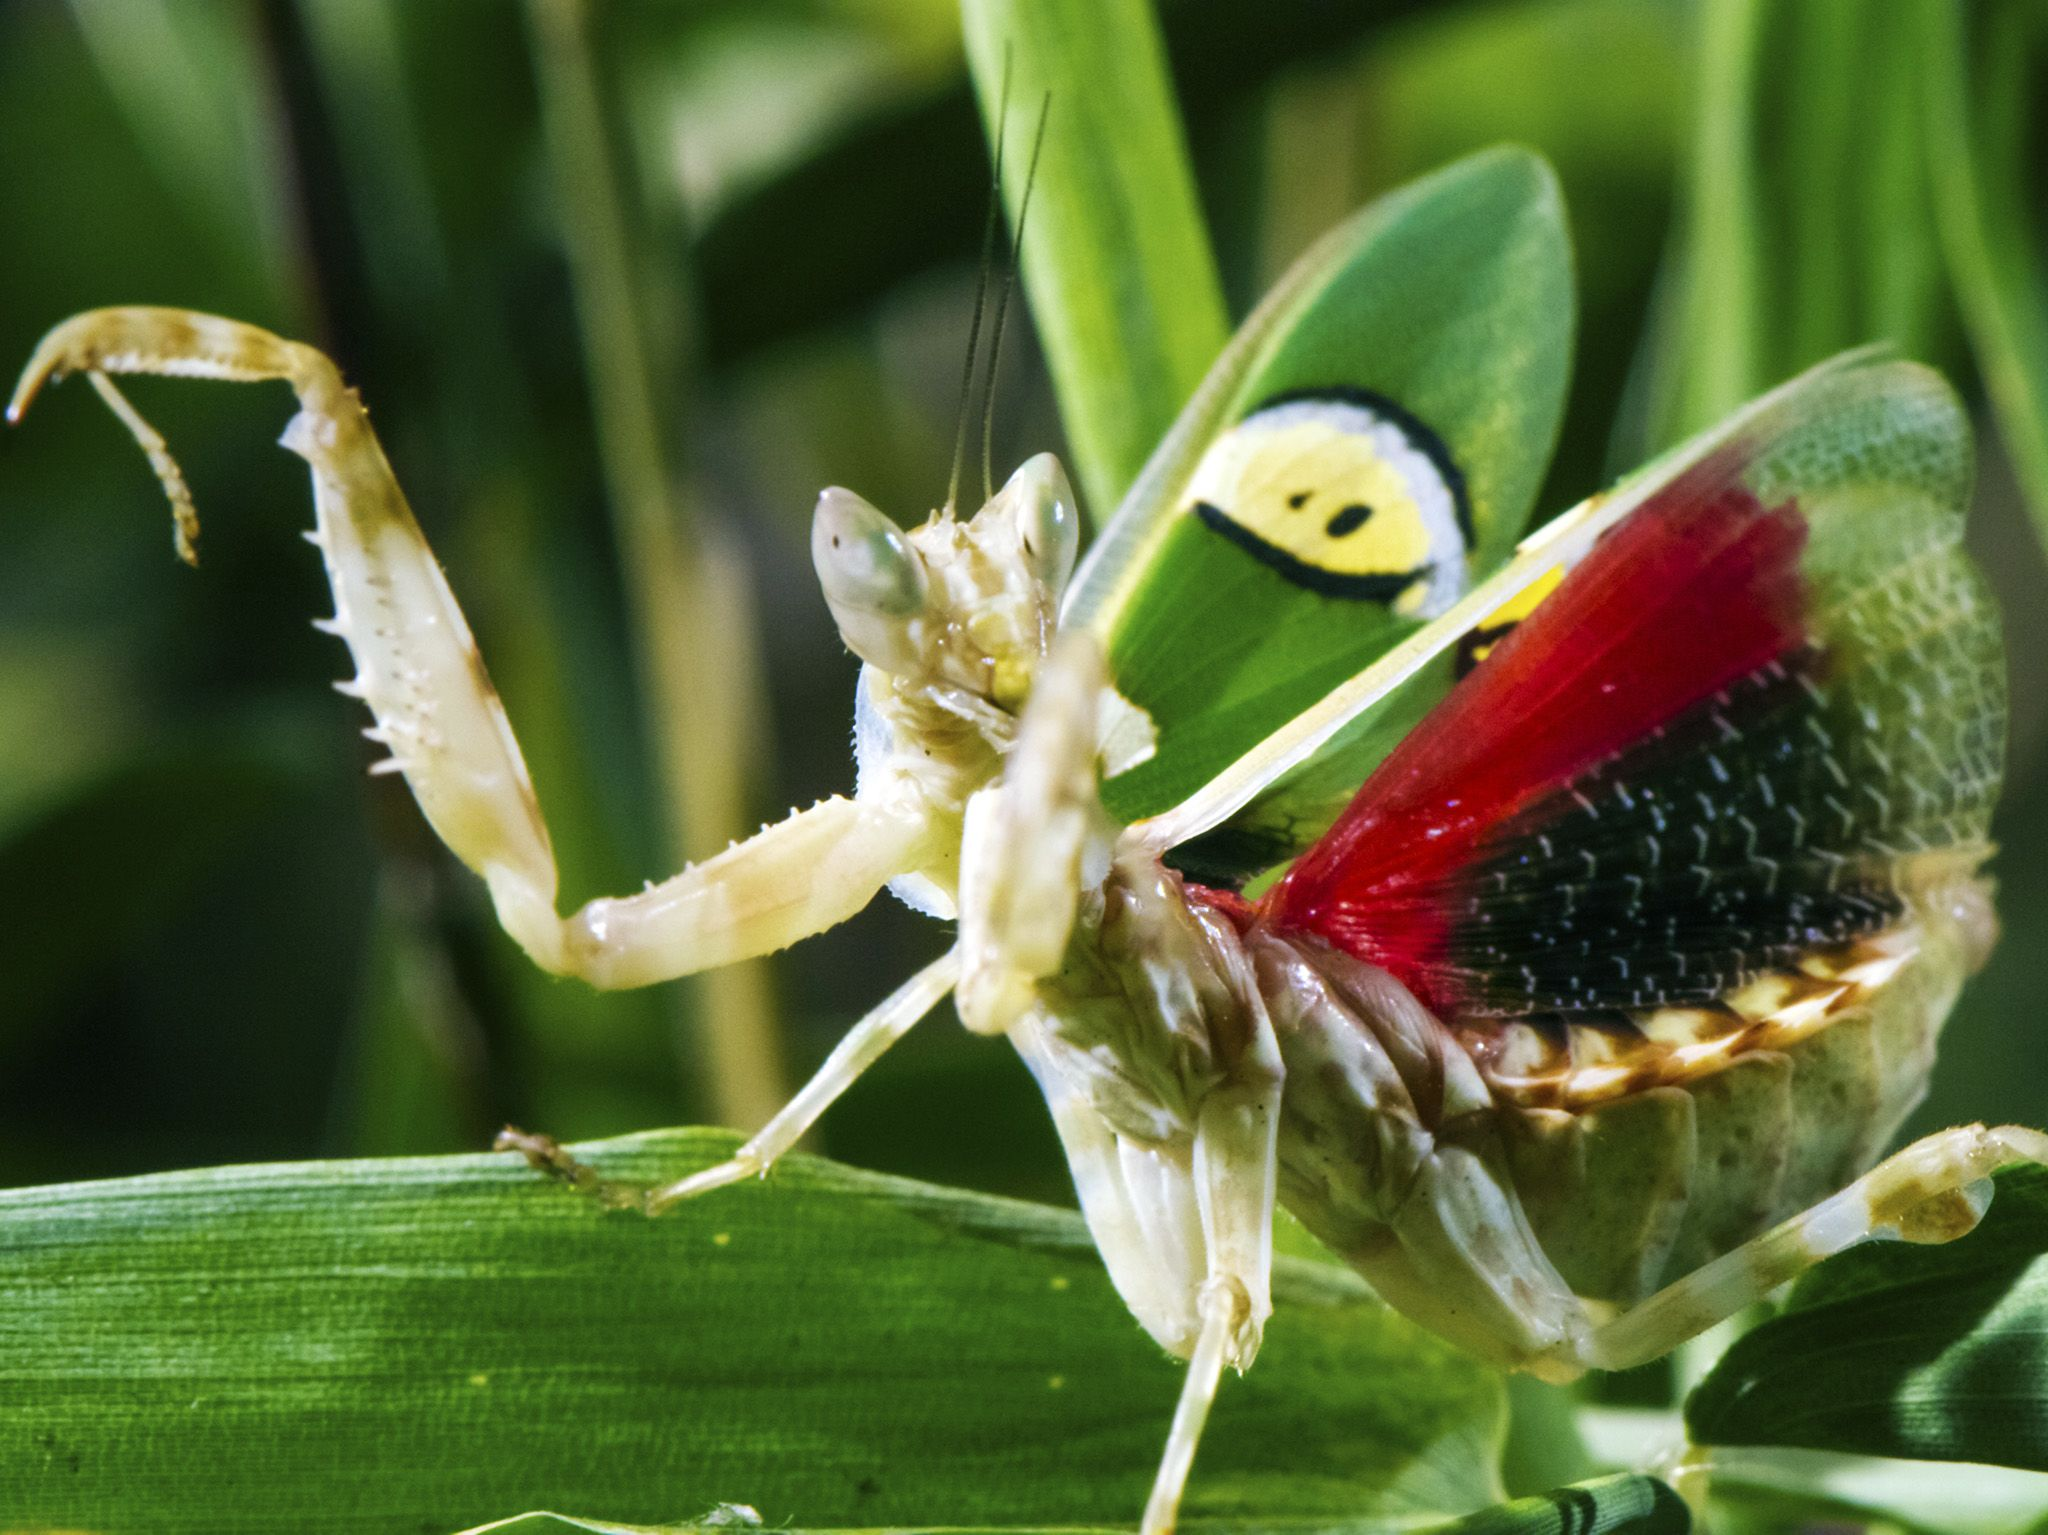 Studio, Somerset, UK:  Jewelled Flower Mantis showing dramatic display to scare off predators.... [Photo of the day - October 2019]